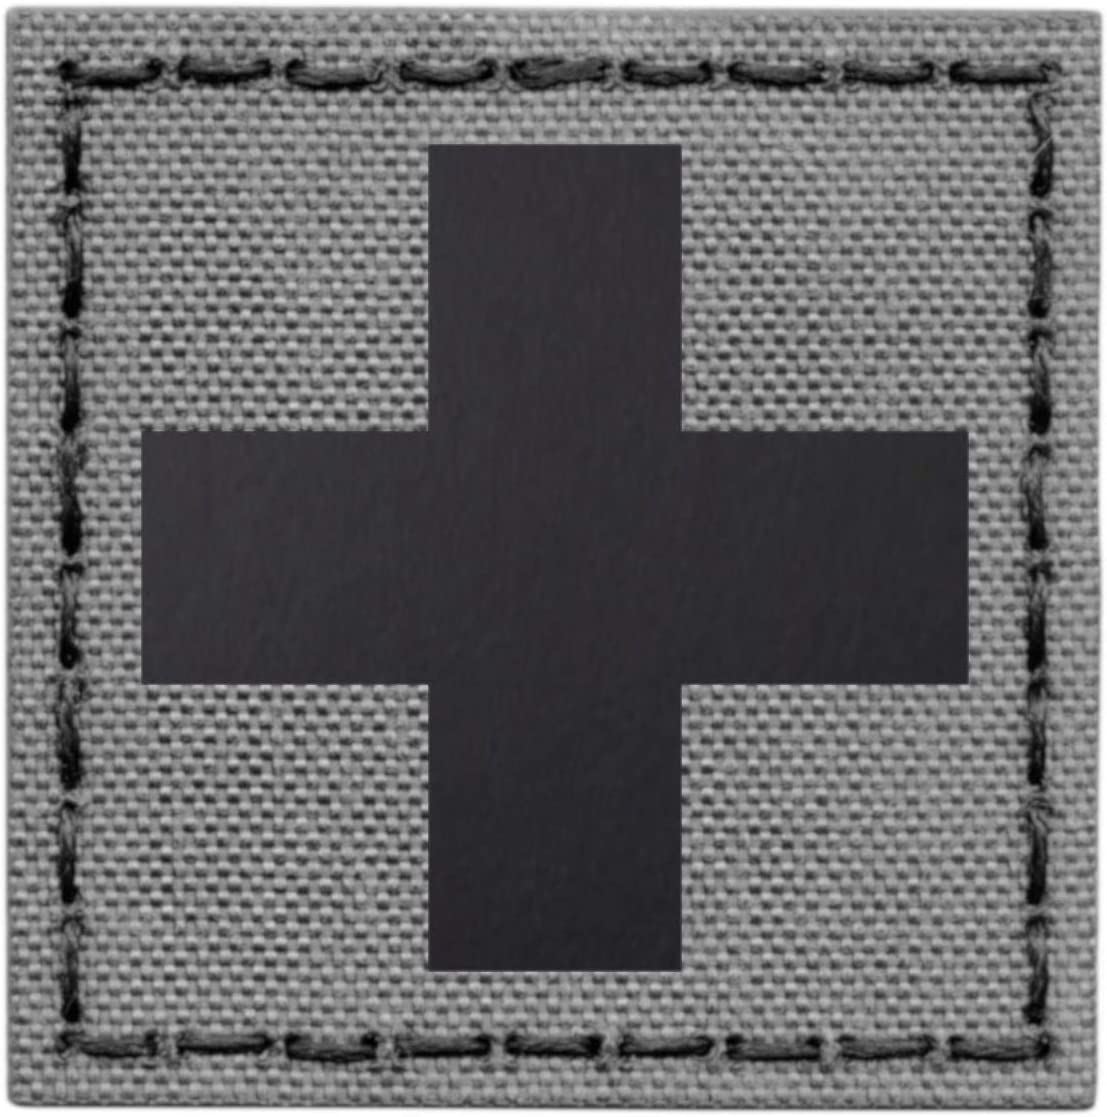 IR IFAK MED Challenge the lowest price of Max 41% OFF Japan ☆ Medical EMS Wolf Tactical EMT Gray Mora 2x2 Infrared